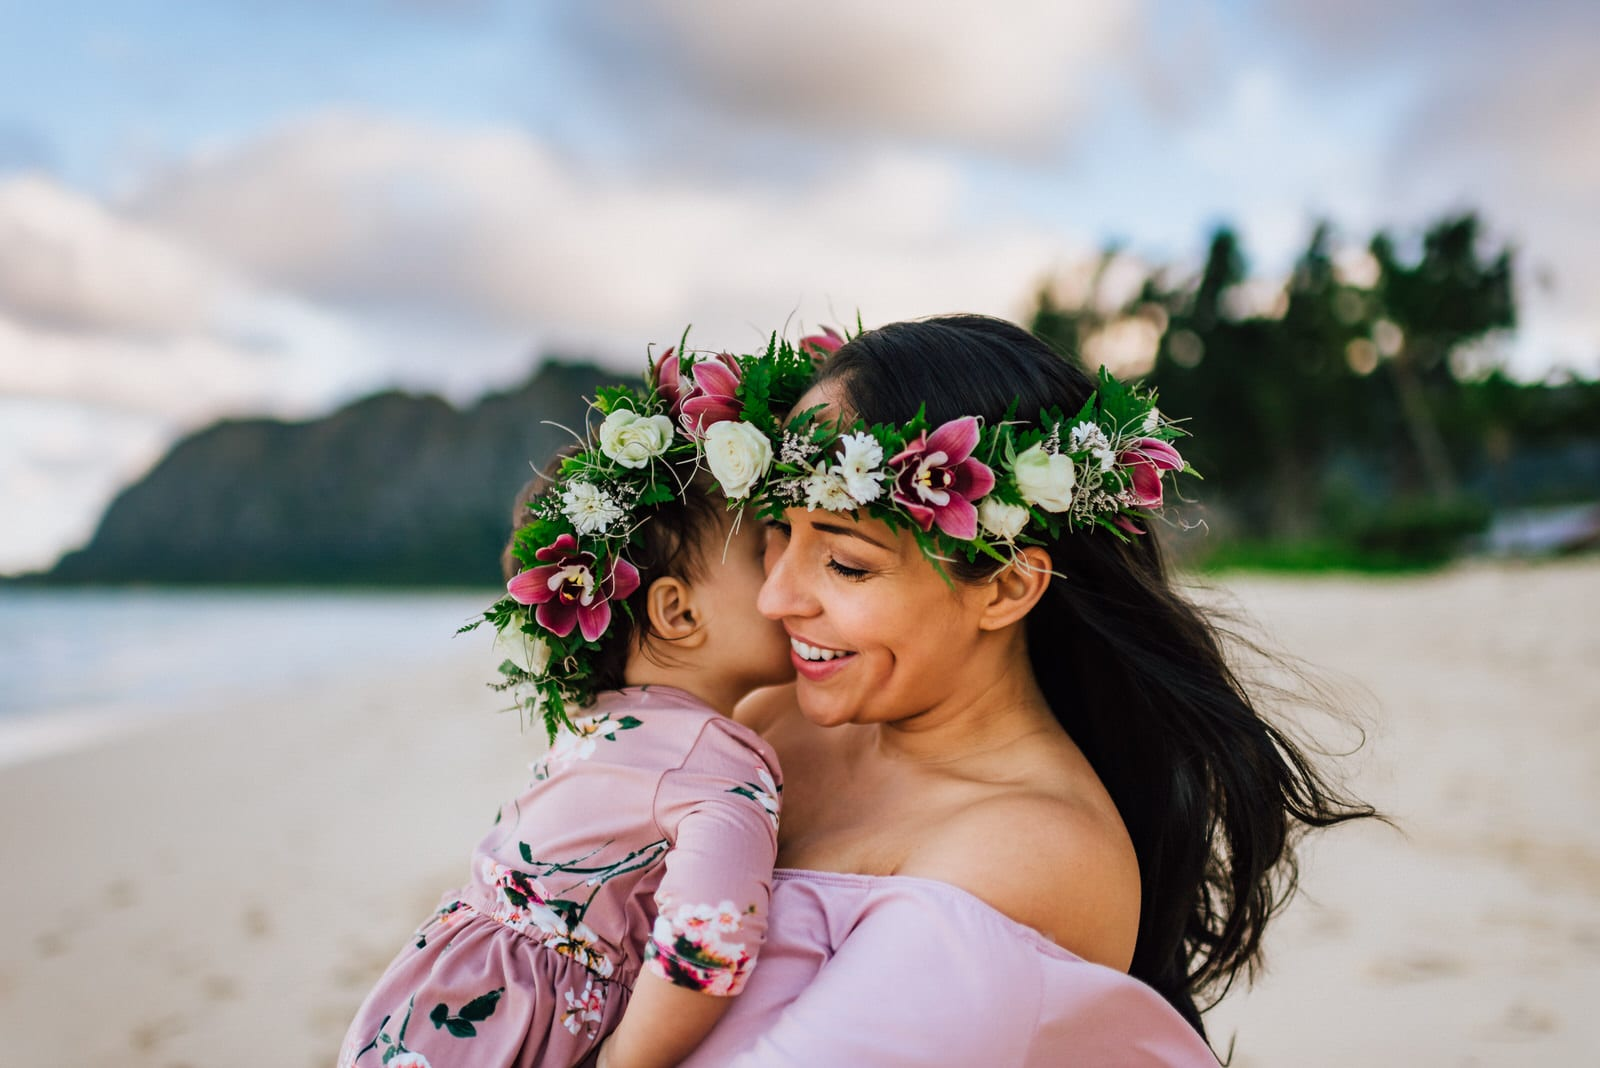 Oahu-Maternity-Photographer-Love-Haku-Flower-Crown-Water-9.jpg